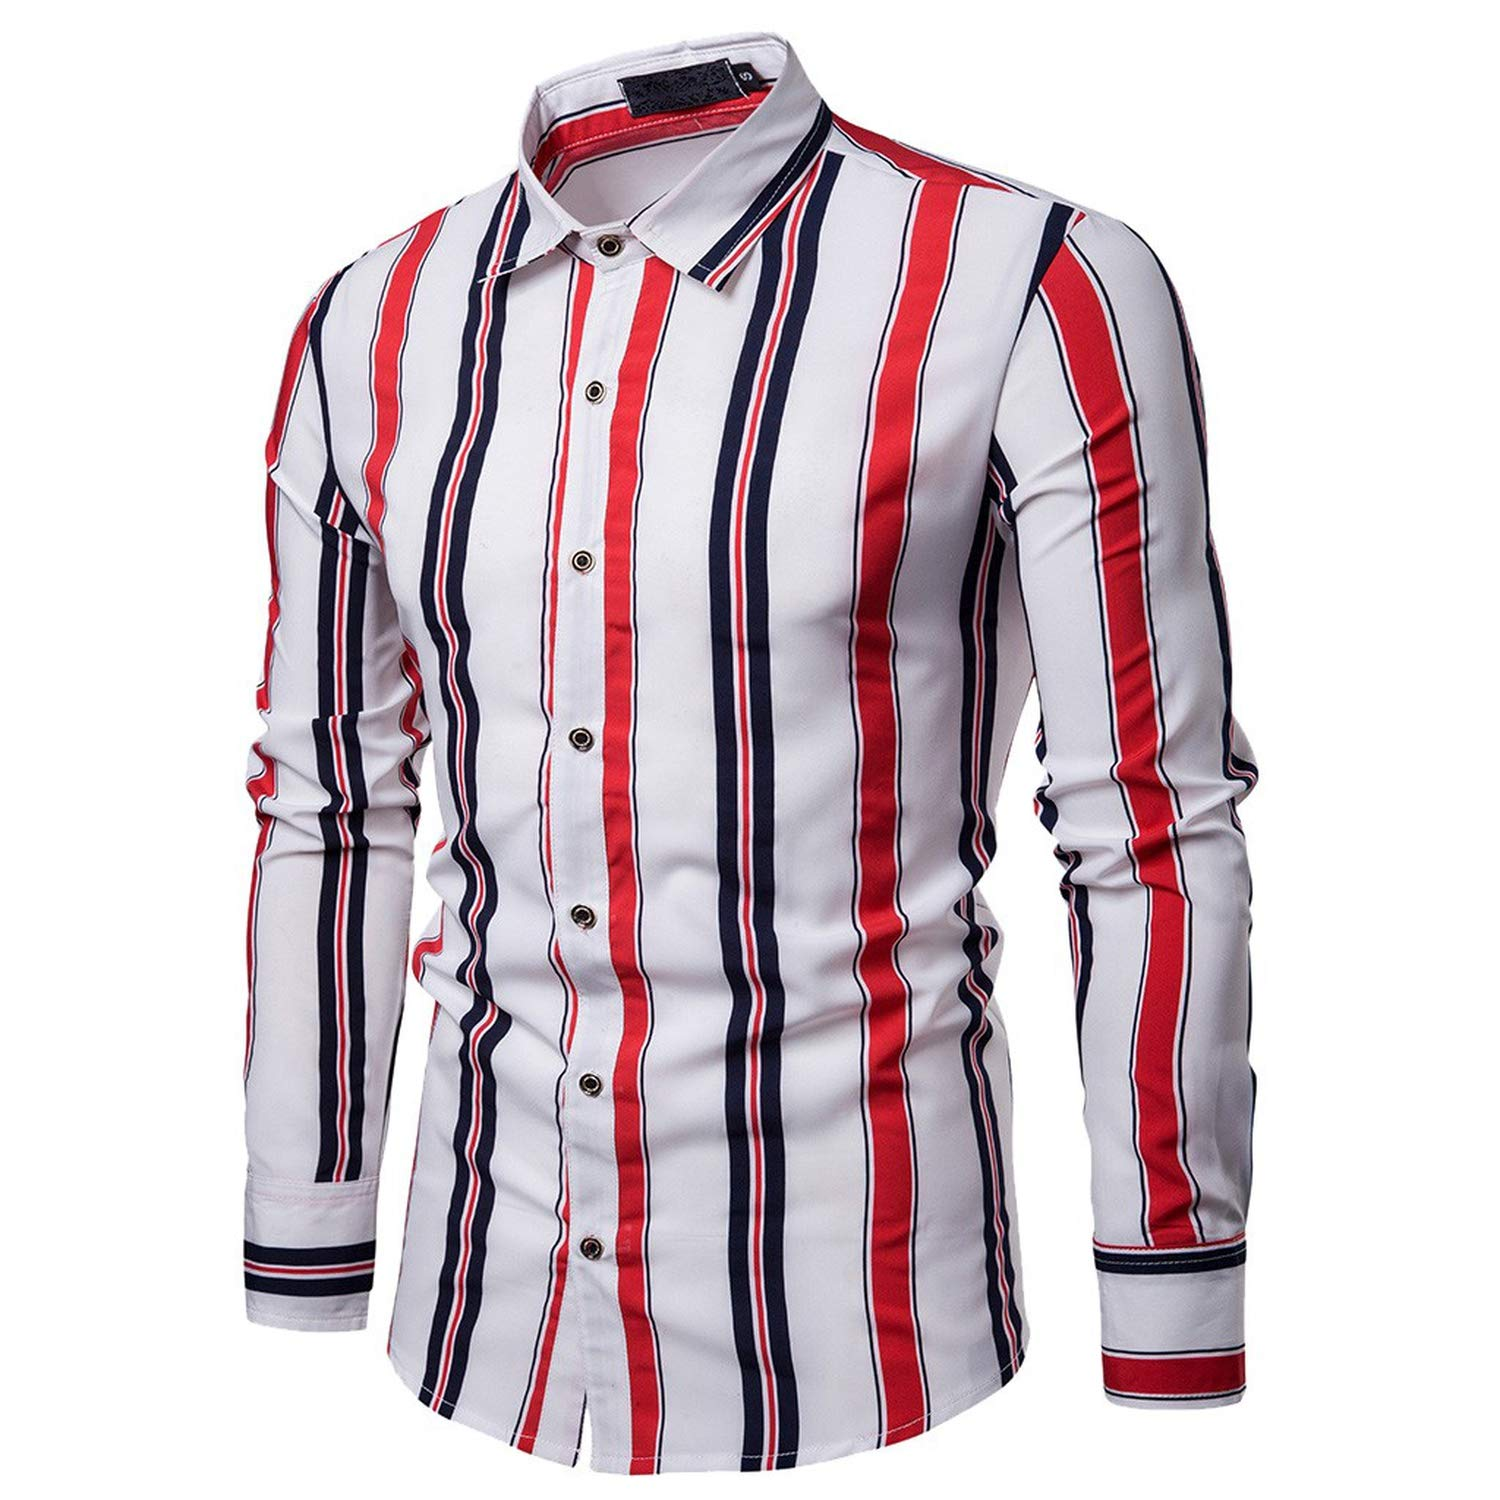 Striped Print Shirt Mens Casual Slim Fit Tops Shirts Work Wear Business Blouse Stand Long Sleeve Button Top,Black,S,United States